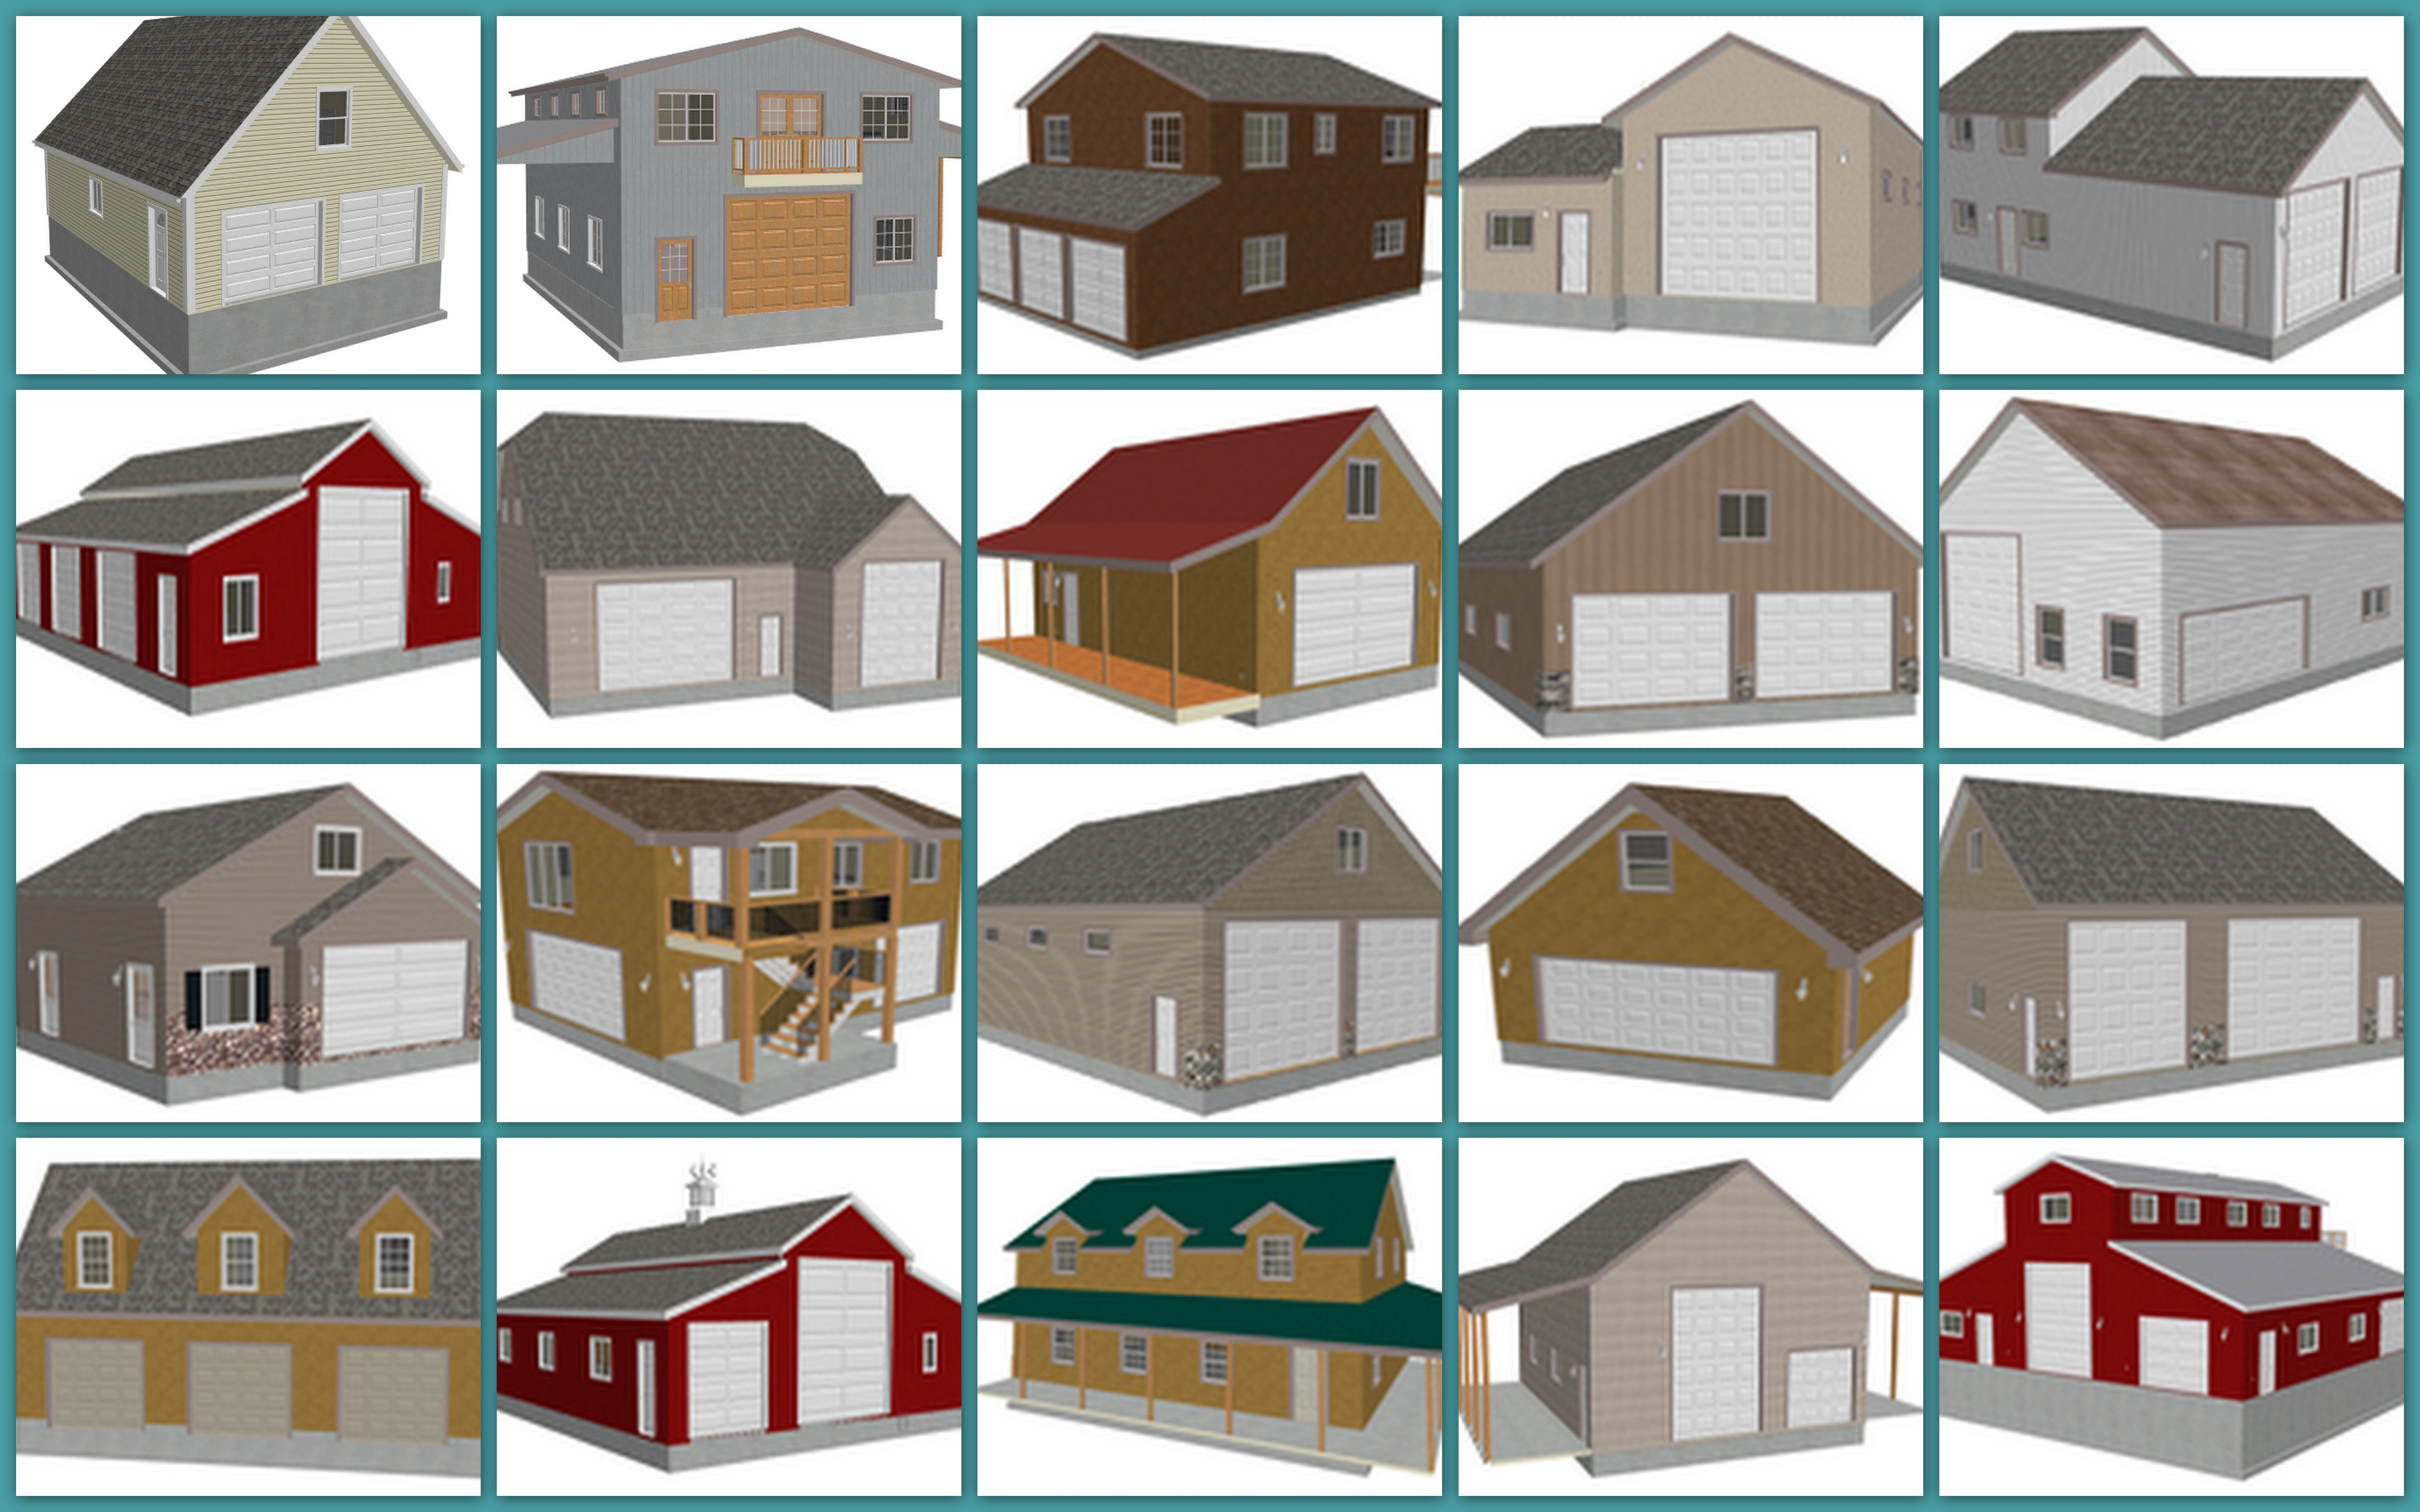 Monitor Barn Plans With Living Quarters Google Search Pole Barn Homes Barn With Living Quarters Garage Plans